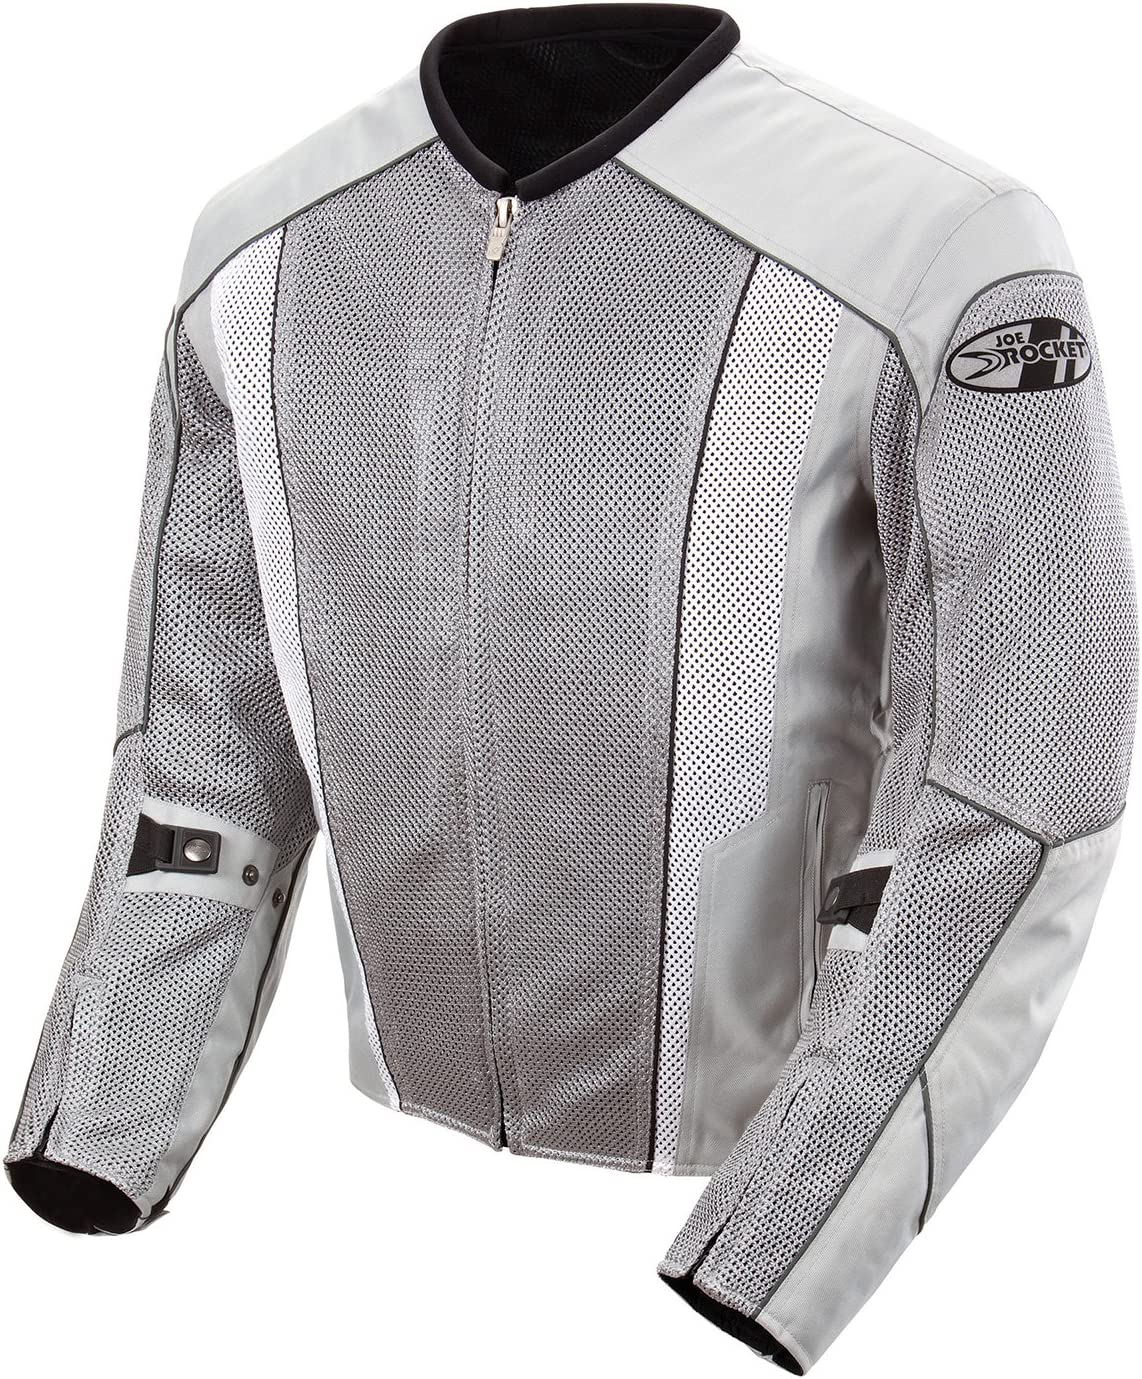 Joe Rocket 851-4504Phoenix 5.0 Men's Mesh Motorcycle Riding Jacket (Silver/Silver, Large)